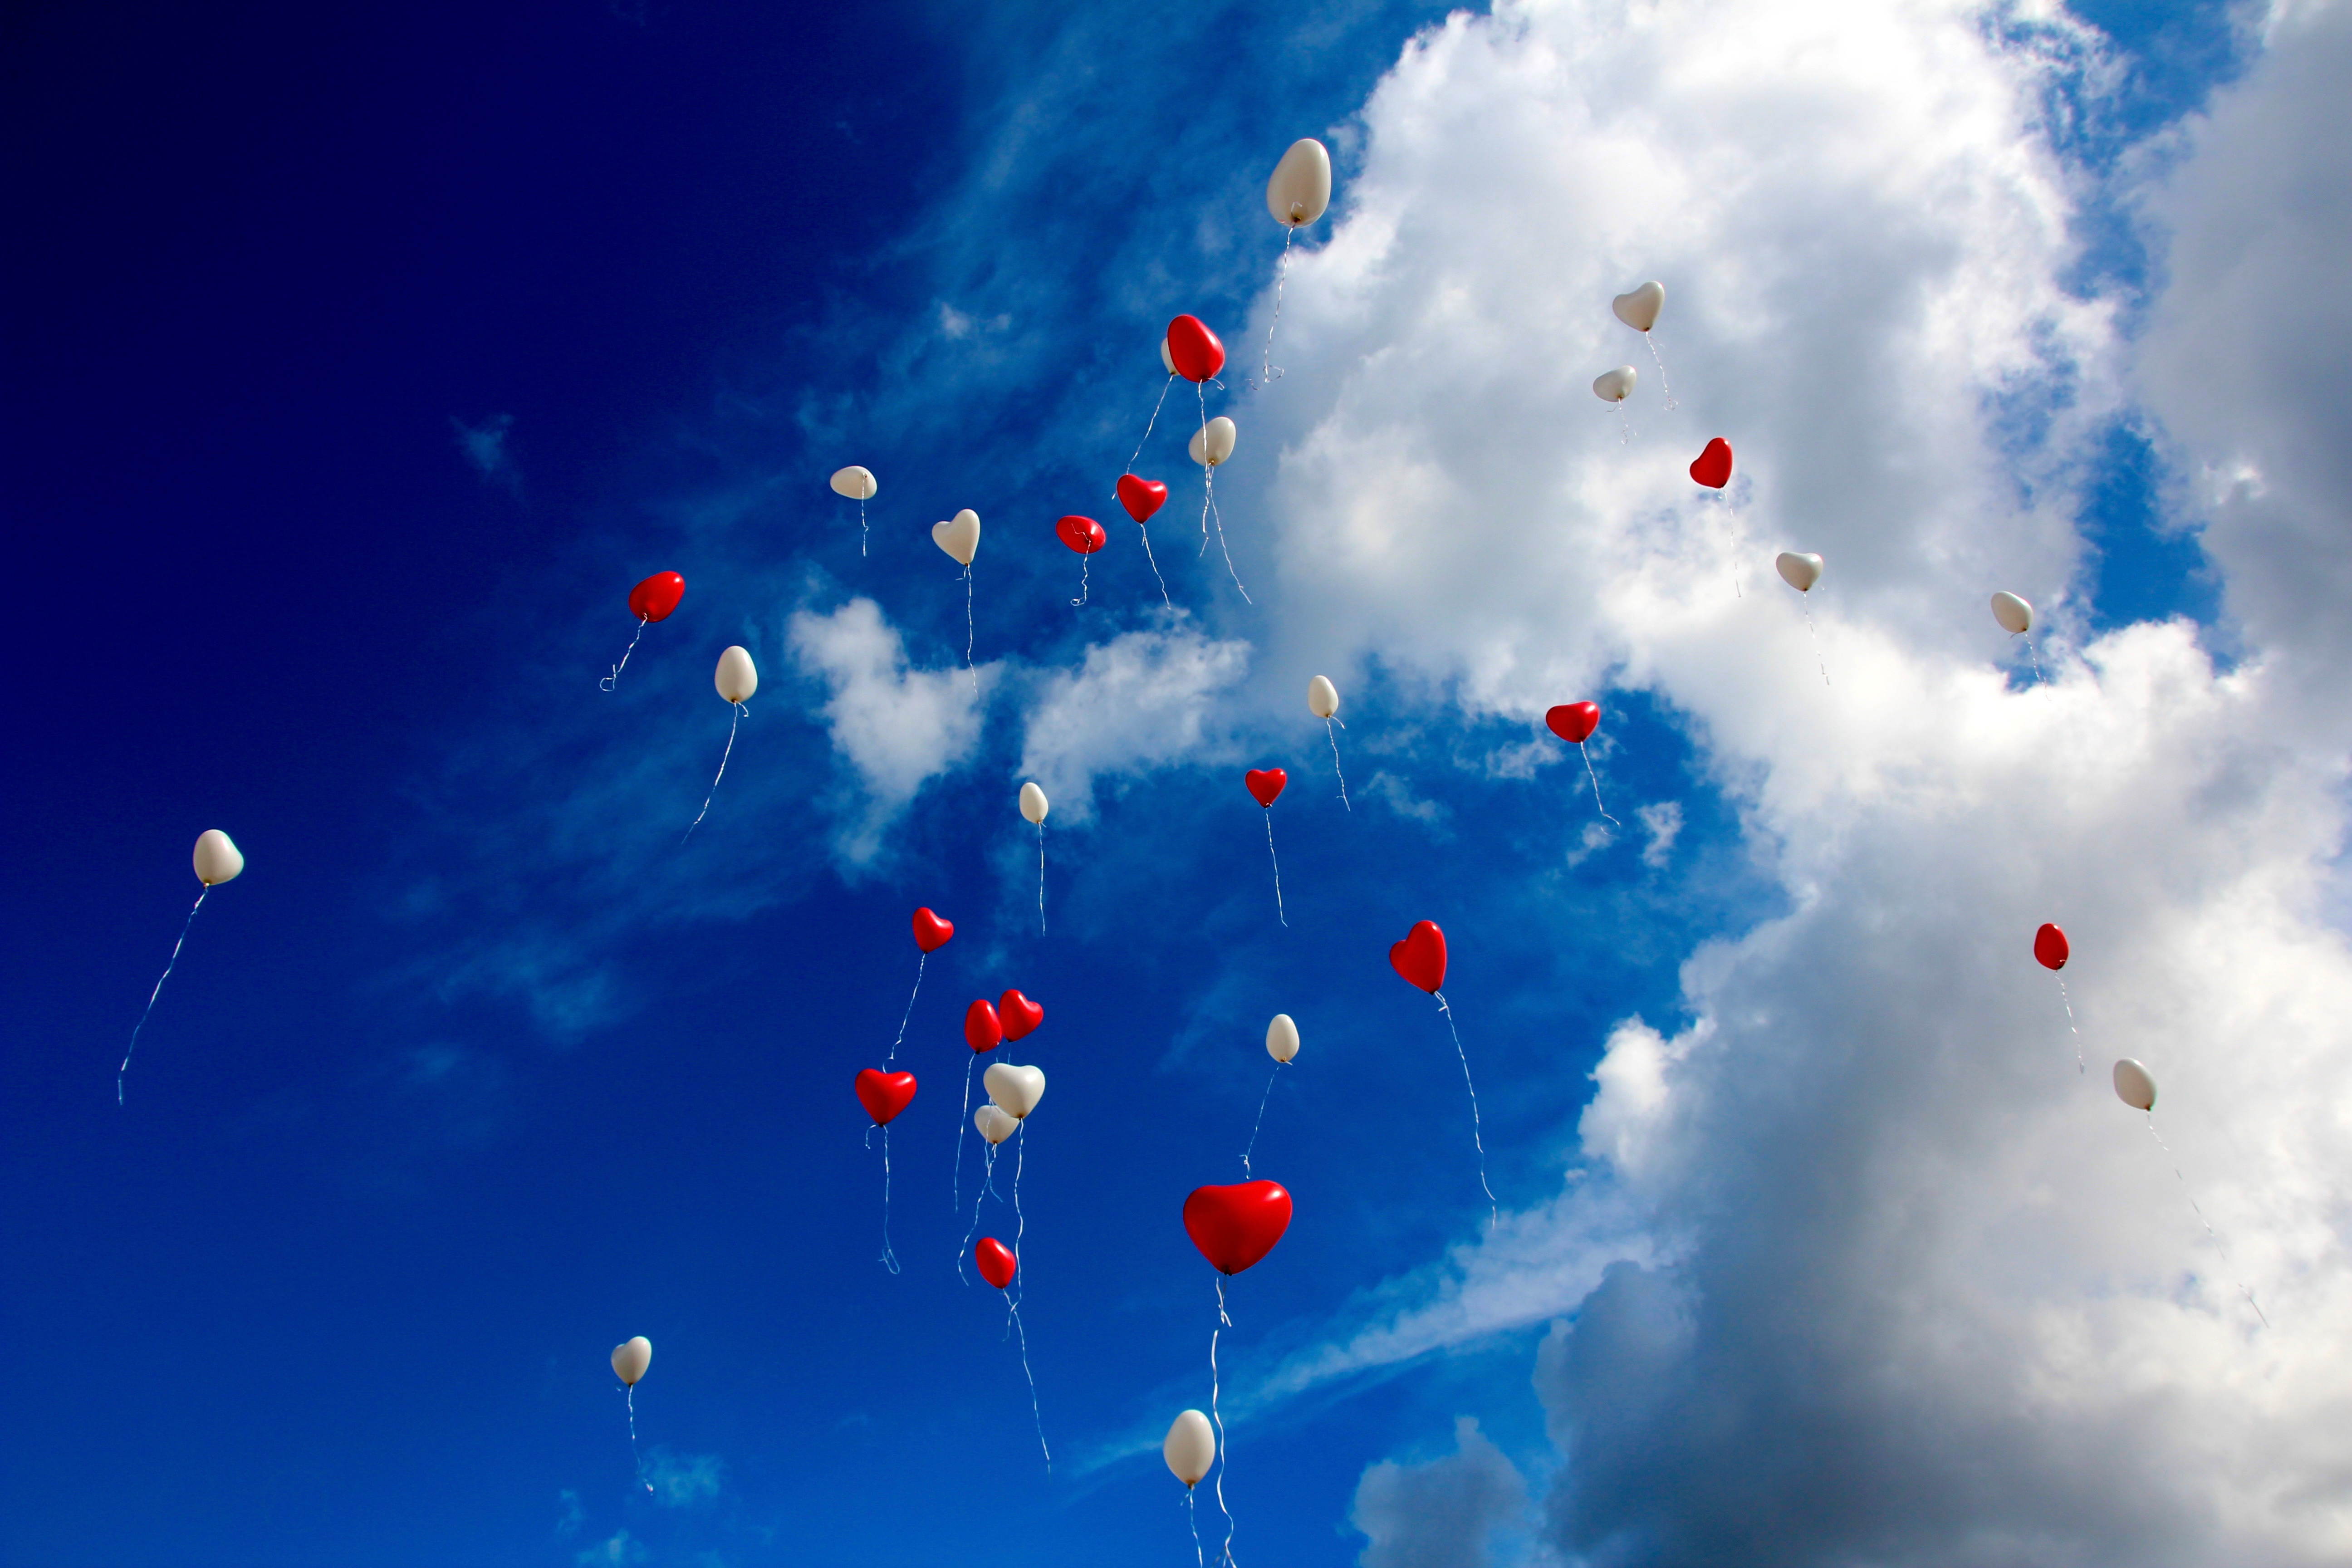 157451 download wallpaper Sky, Clouds, Love, Hearts, Balloons screensavers and pictures for free